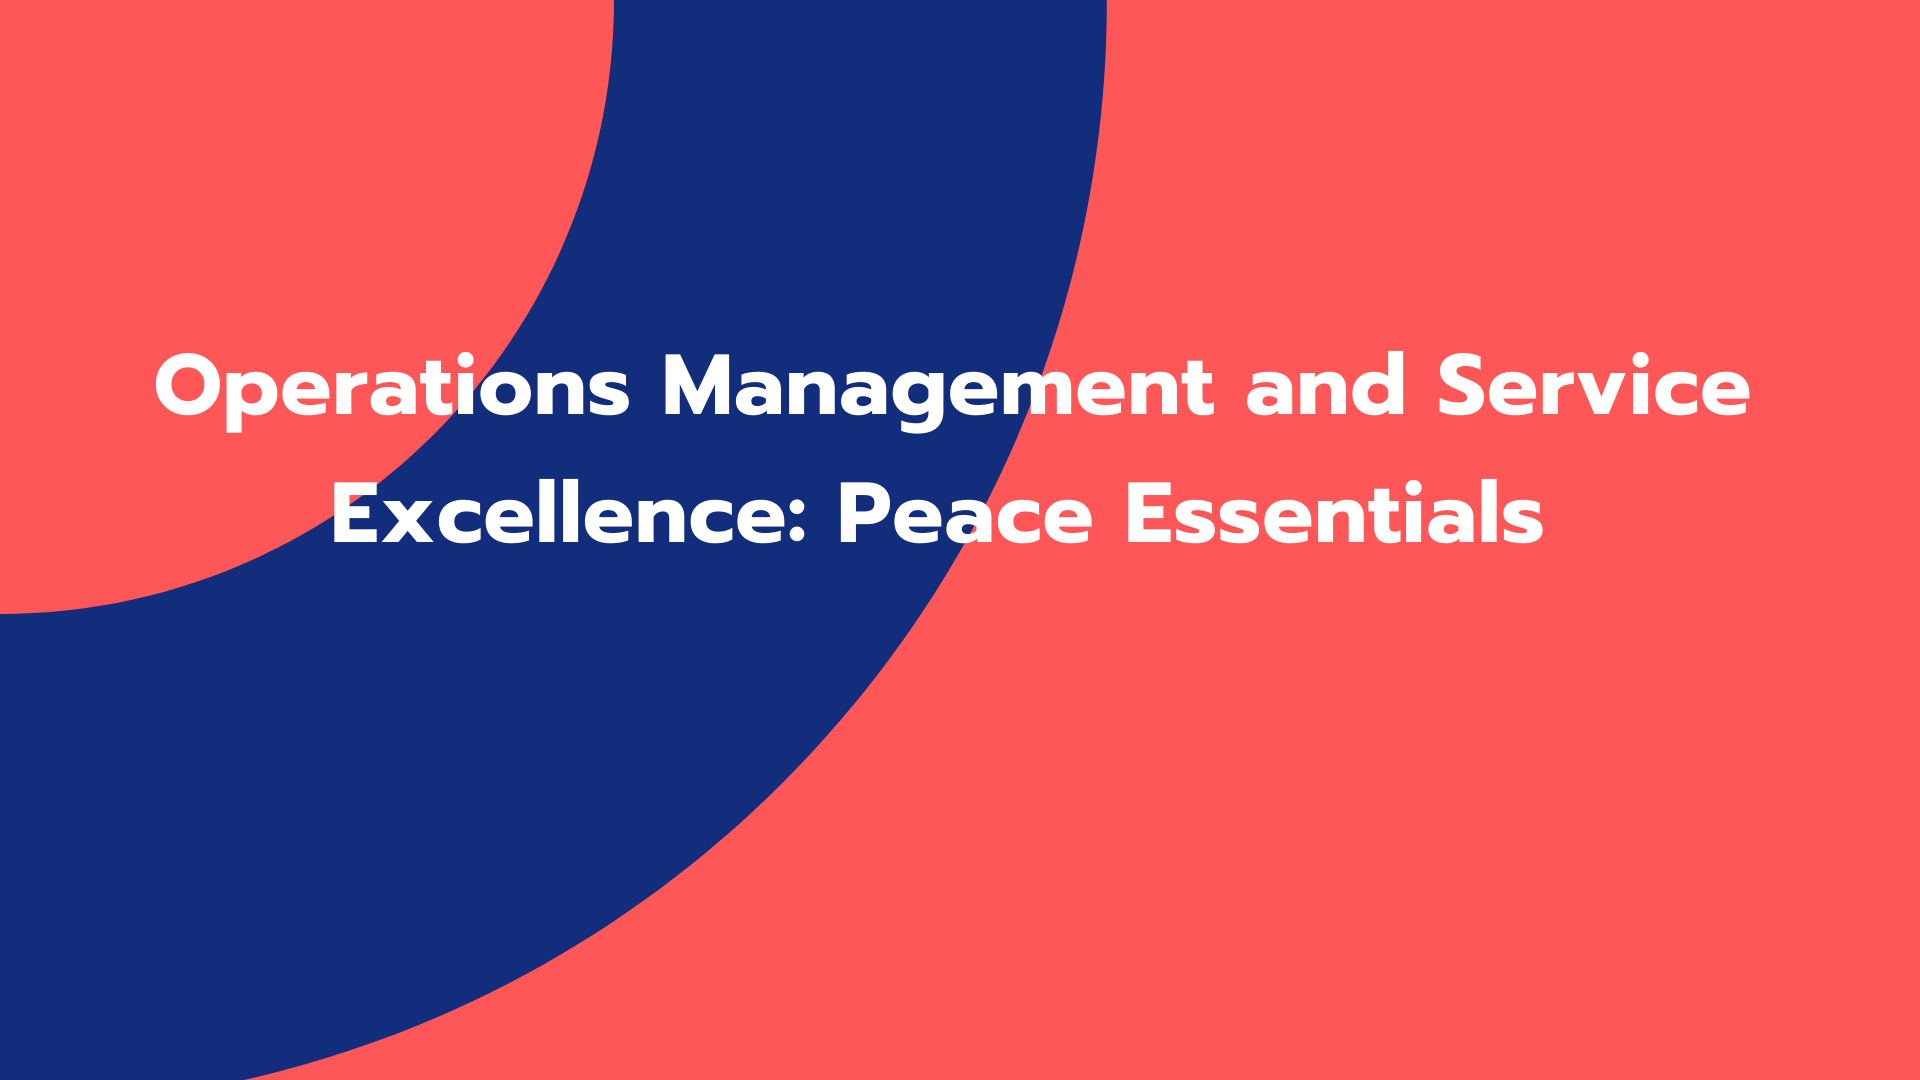 Operations Management and Service Excellence: Peace Essentials